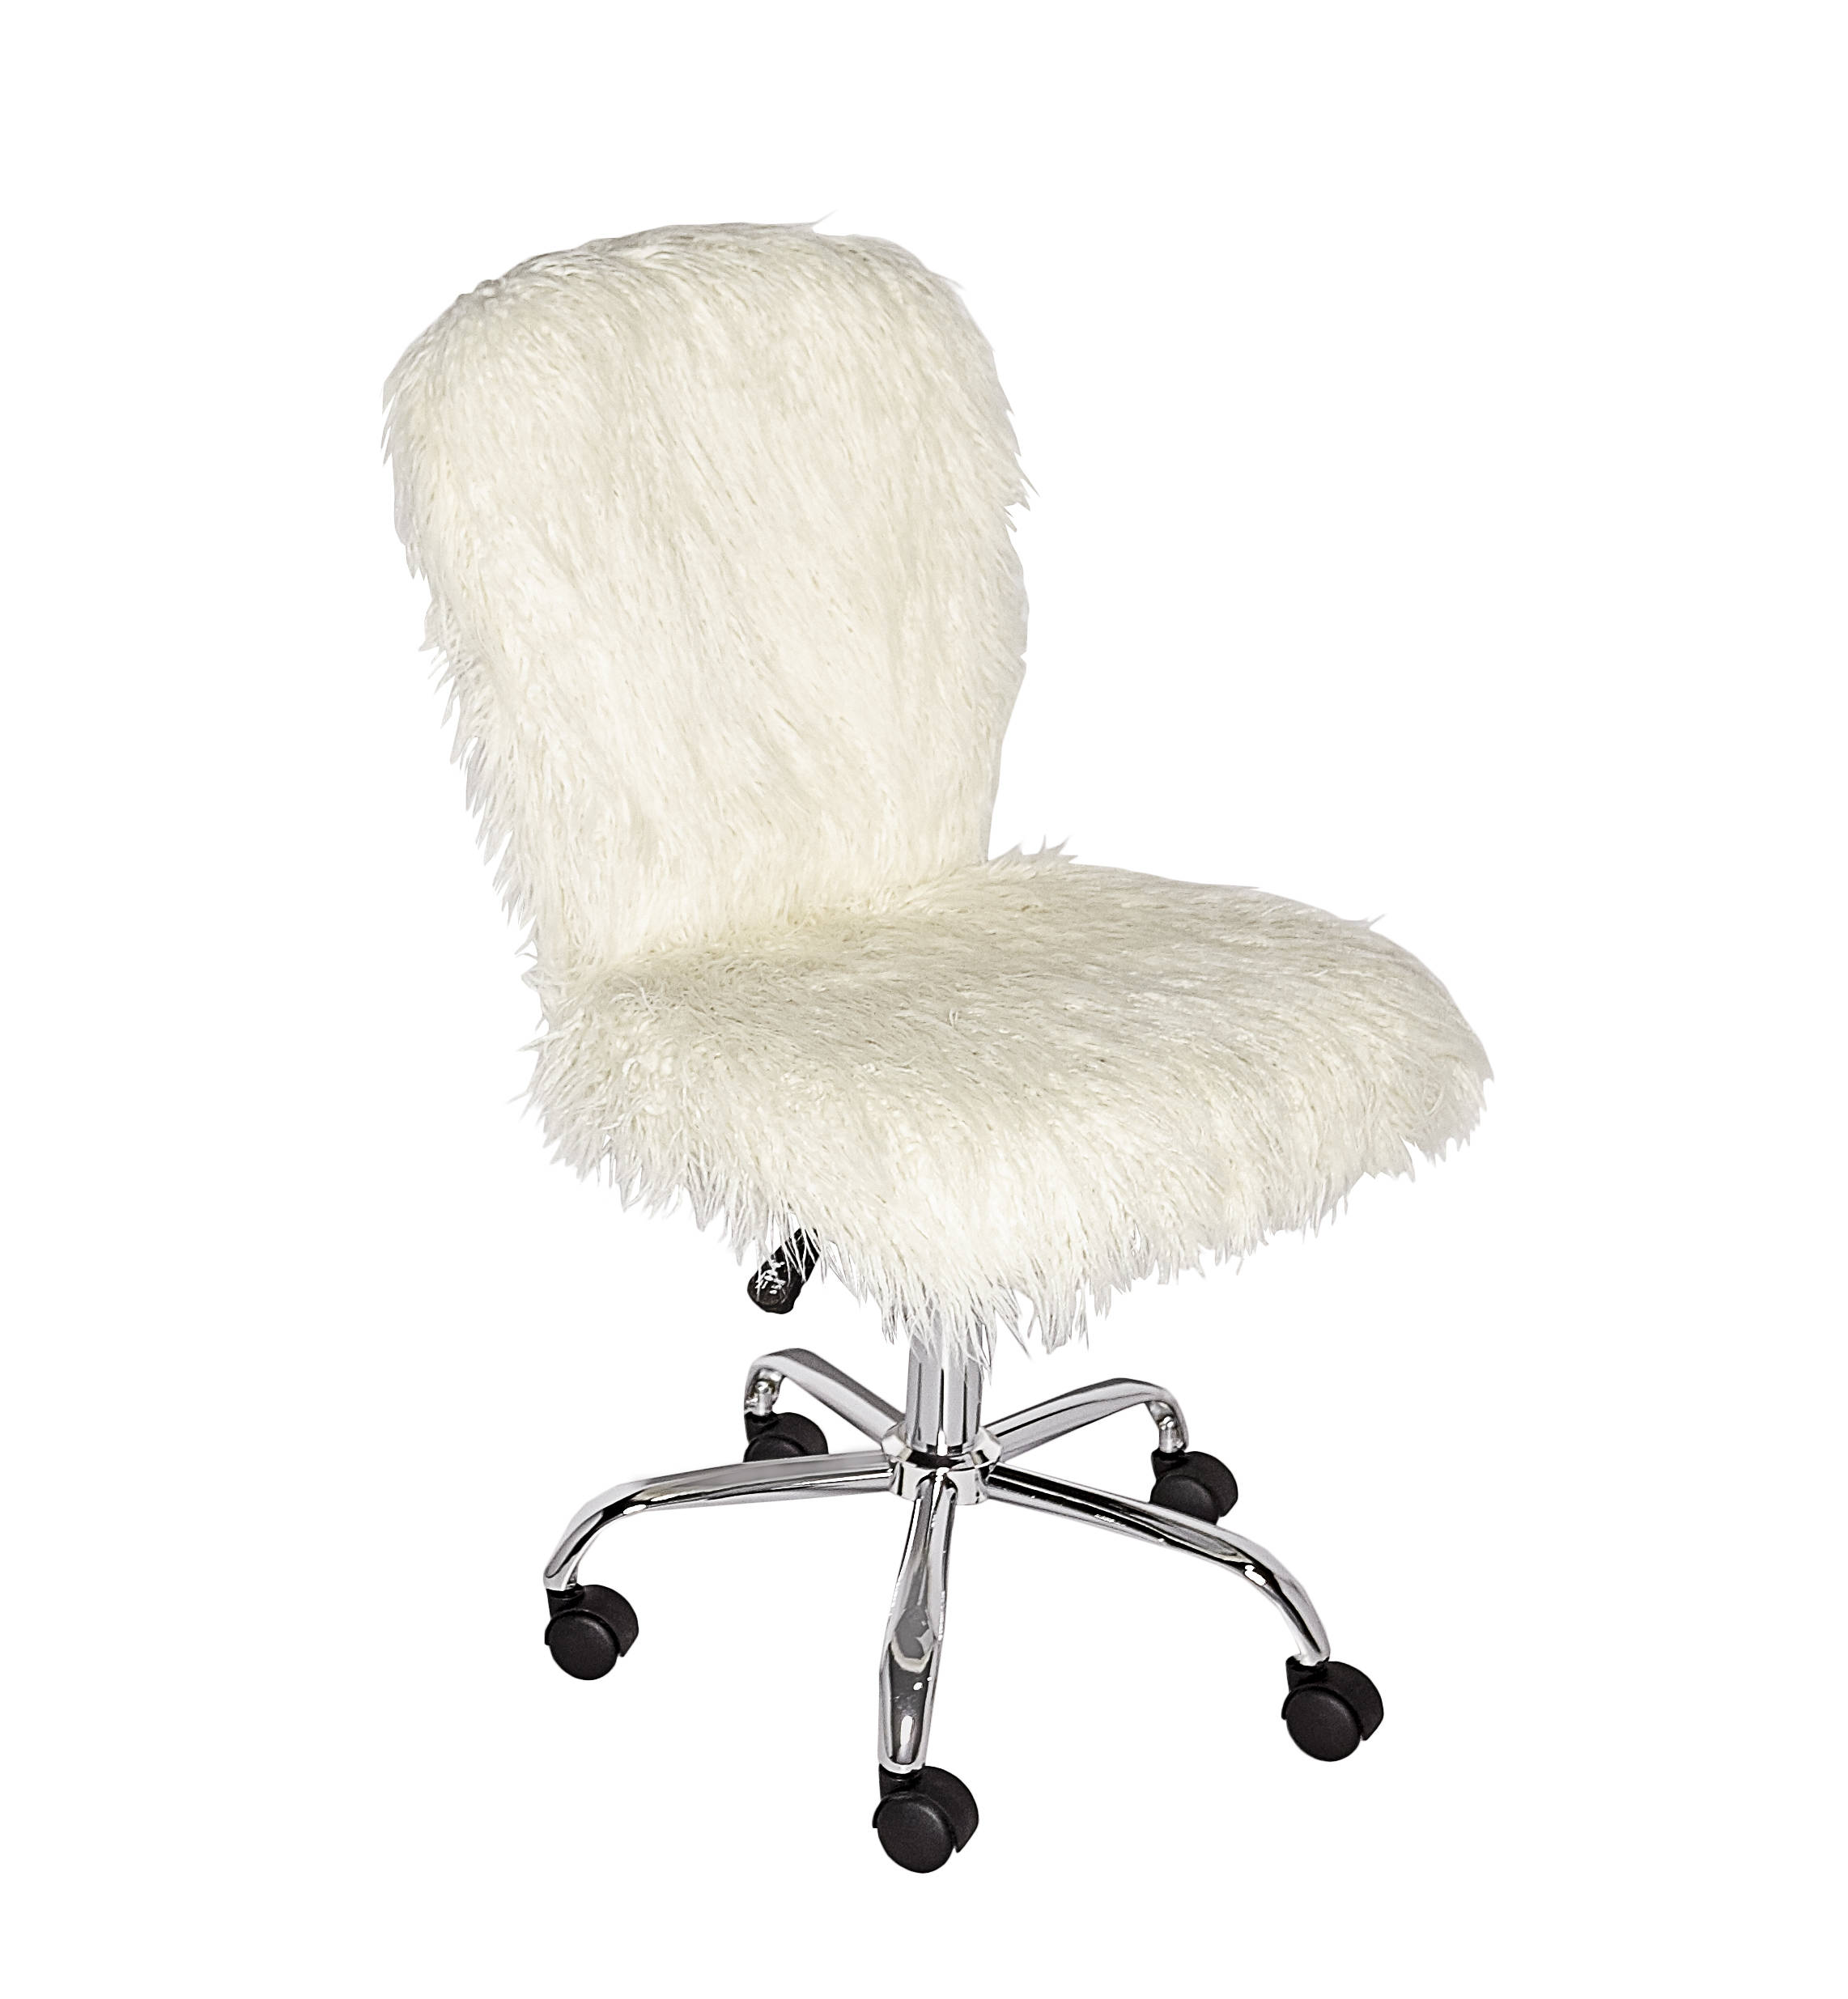 base star fabric products chair supply seat gray back armless foam frasch hut frame white office light task